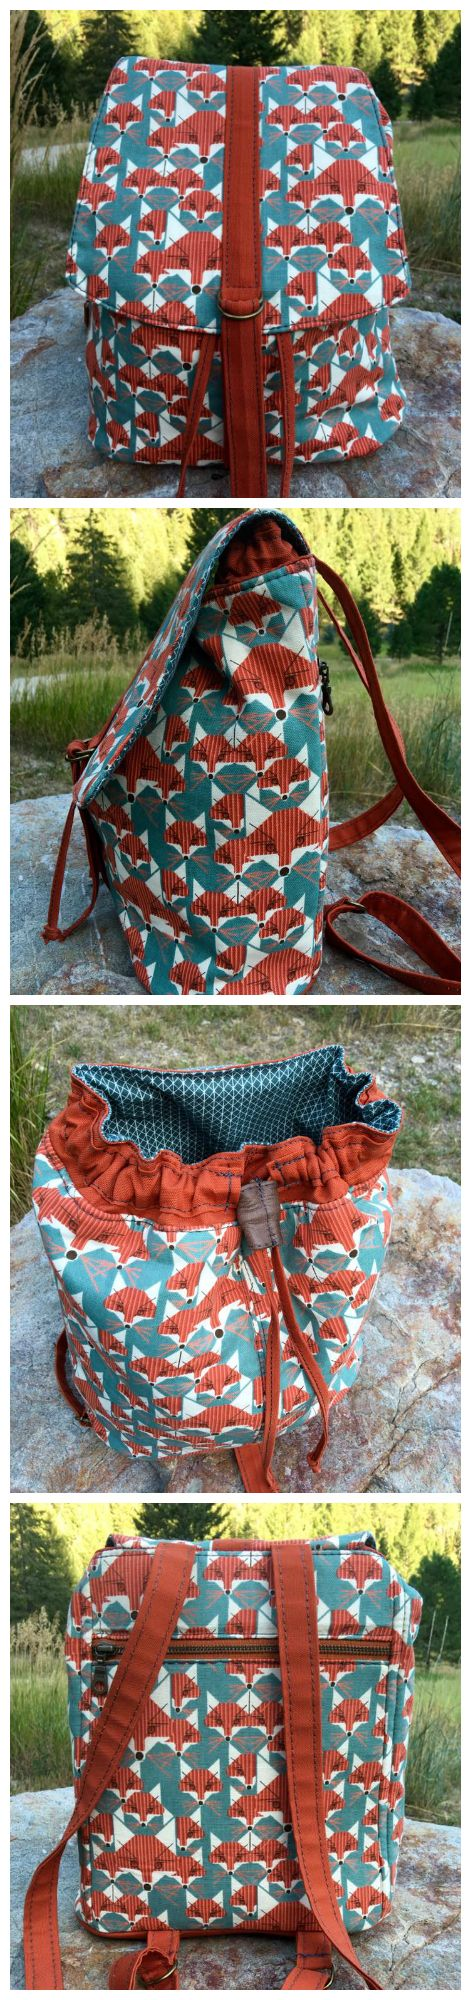 Lucy backpack sewing pattern.  Very versatile bag, looks beautiful and not too difficult to sew.  Pattern from Swoon, photos by Beatriz Padron McDavid                                                                                                                                                                                 More